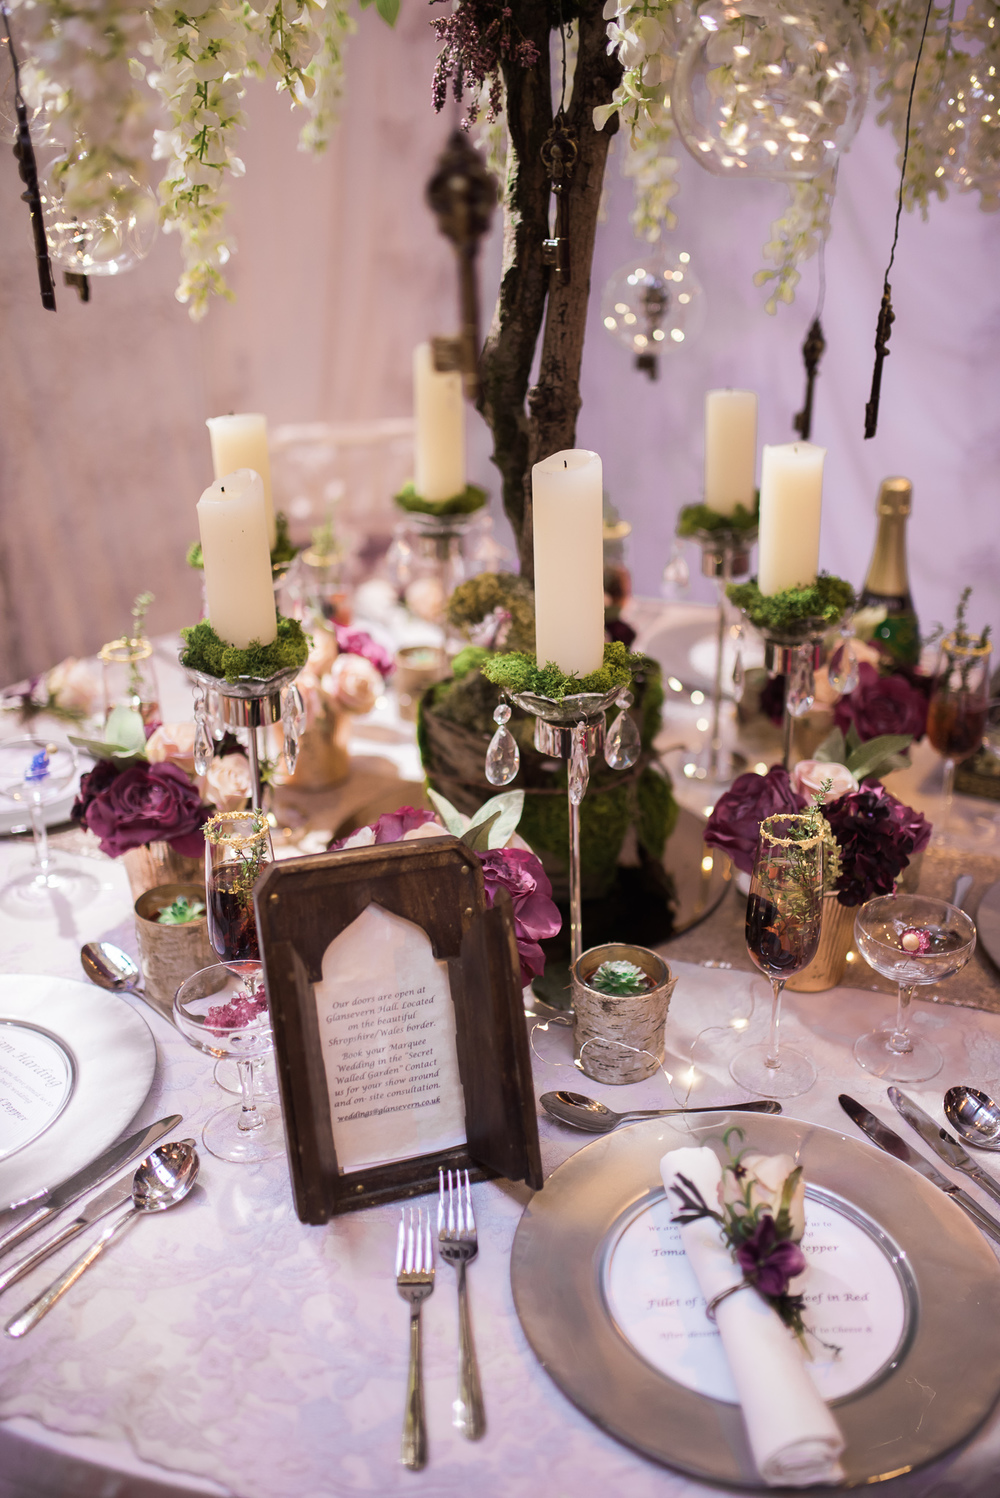 National Wedding Show Birmingham | Chillie Breeze | Sue Ann Simon Photography 2